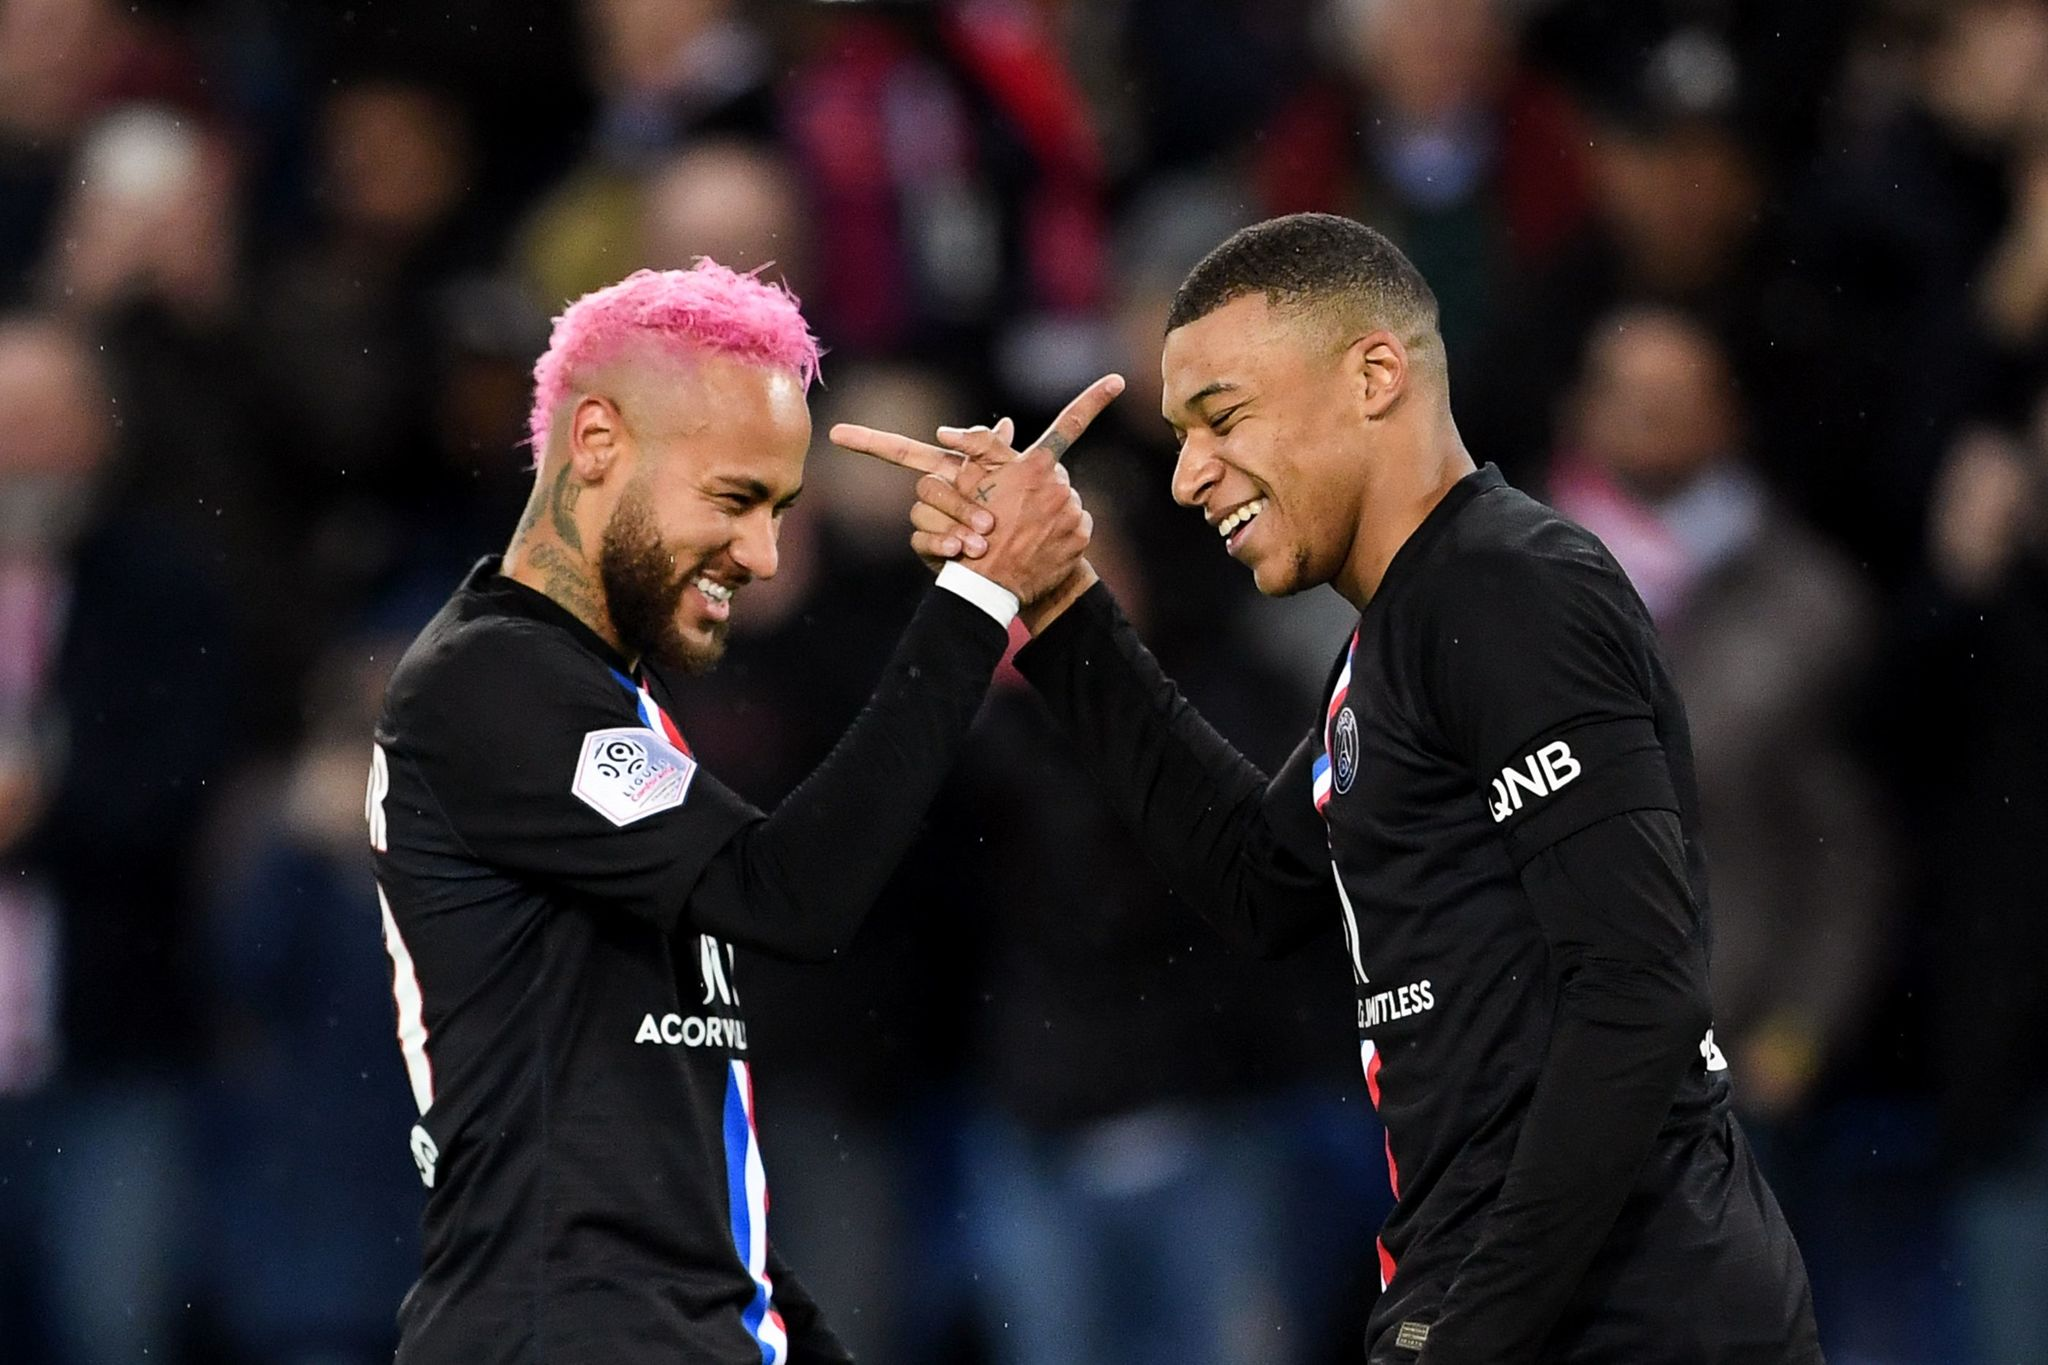 Paris Saint-Germains French forward Kylian <HIT>Mbappe</HIT> (R) is congratulated by Paris Saint-Germains Brazilian forward Neymar after scoring a goal during the French L1 football match between Paris Saint-Germain (PSG) and Montpellier Herault SC at the Parc des Princes stadium in Paris, on February 1, 2020. (Photo by MARTIN BUREAU / AFP)